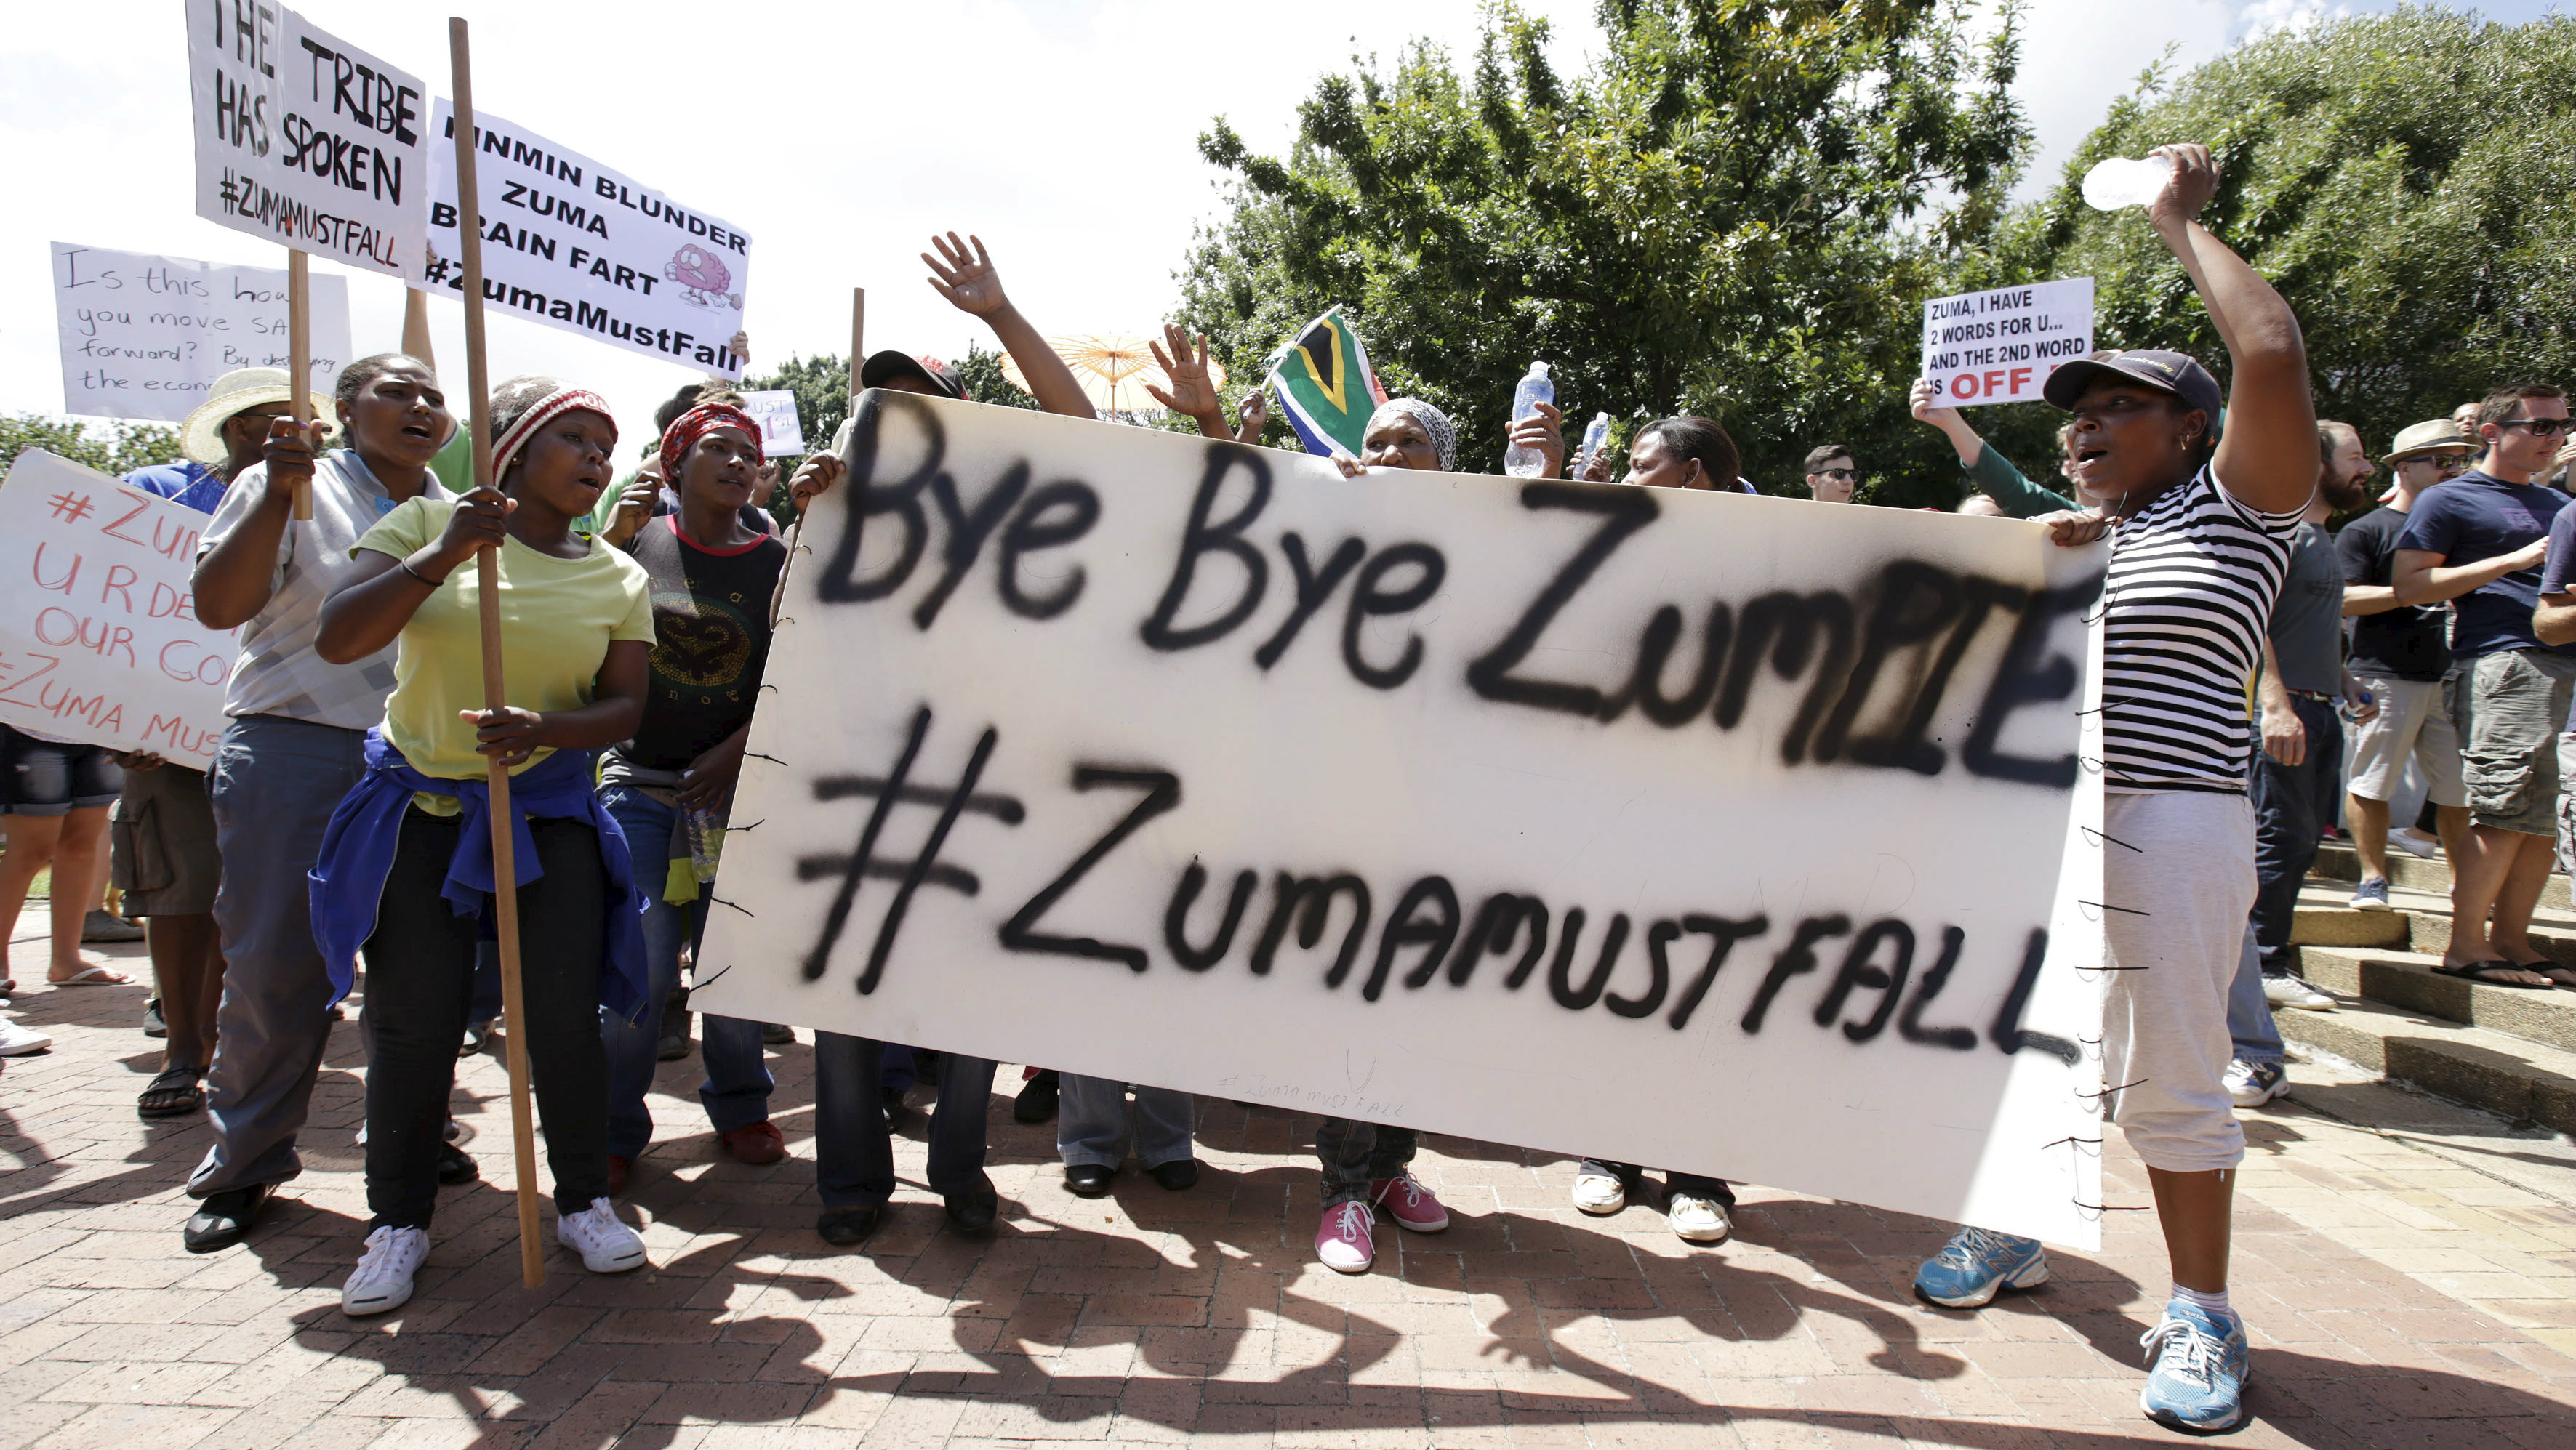 Protesters carry placards as they take part in a demonstration against President Jacob Zuma in Cape town, South Africa, December 16, 2015.